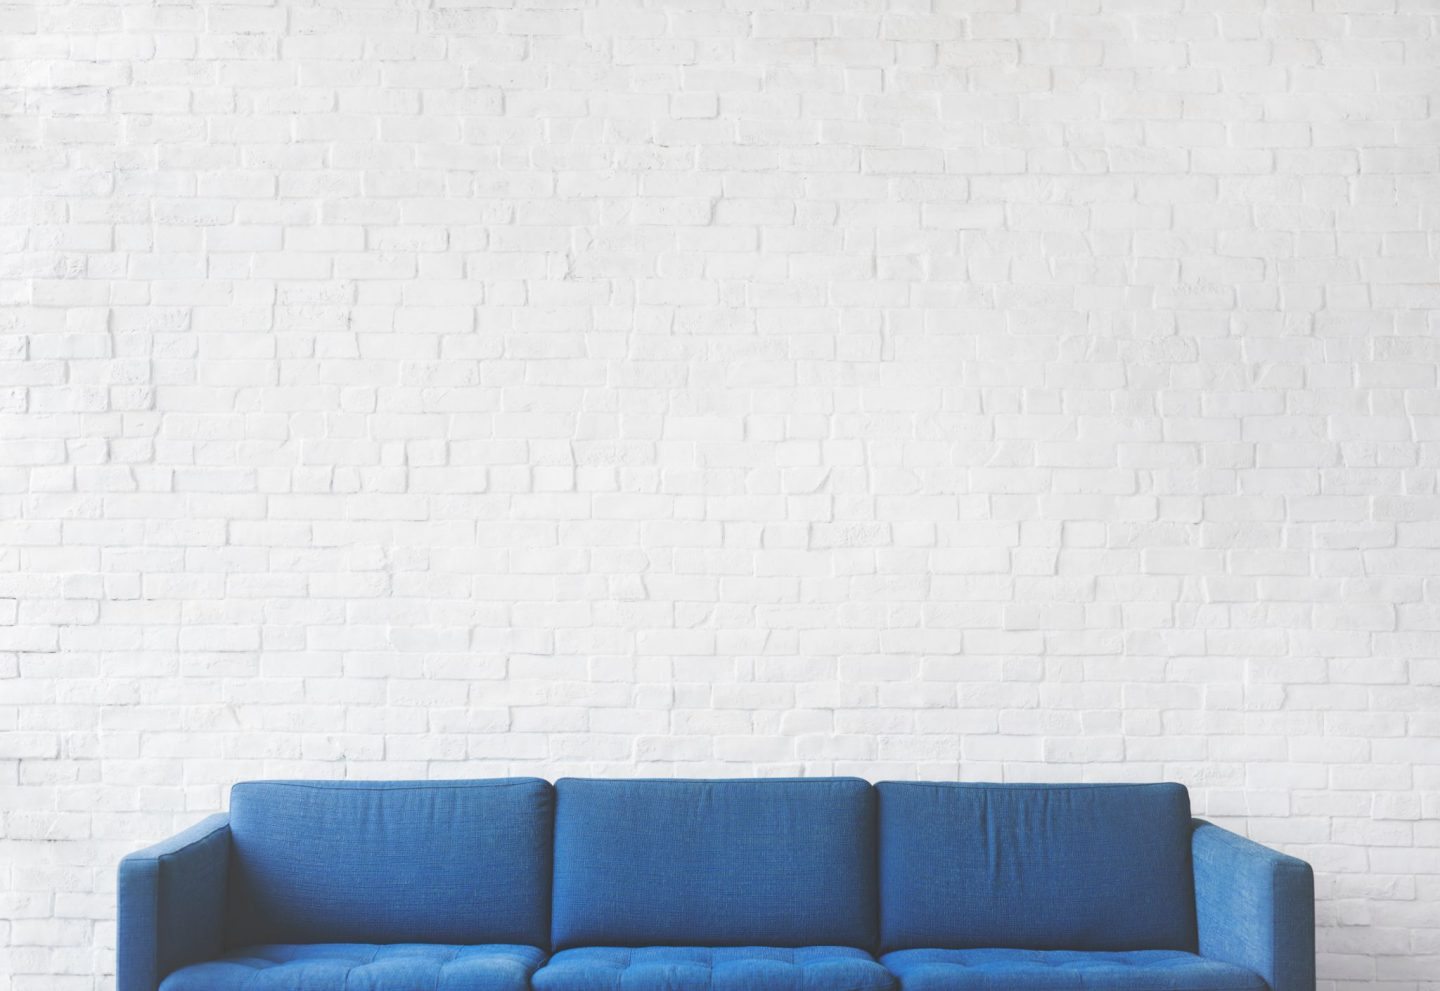 What To Consider When Buying A New Sofa